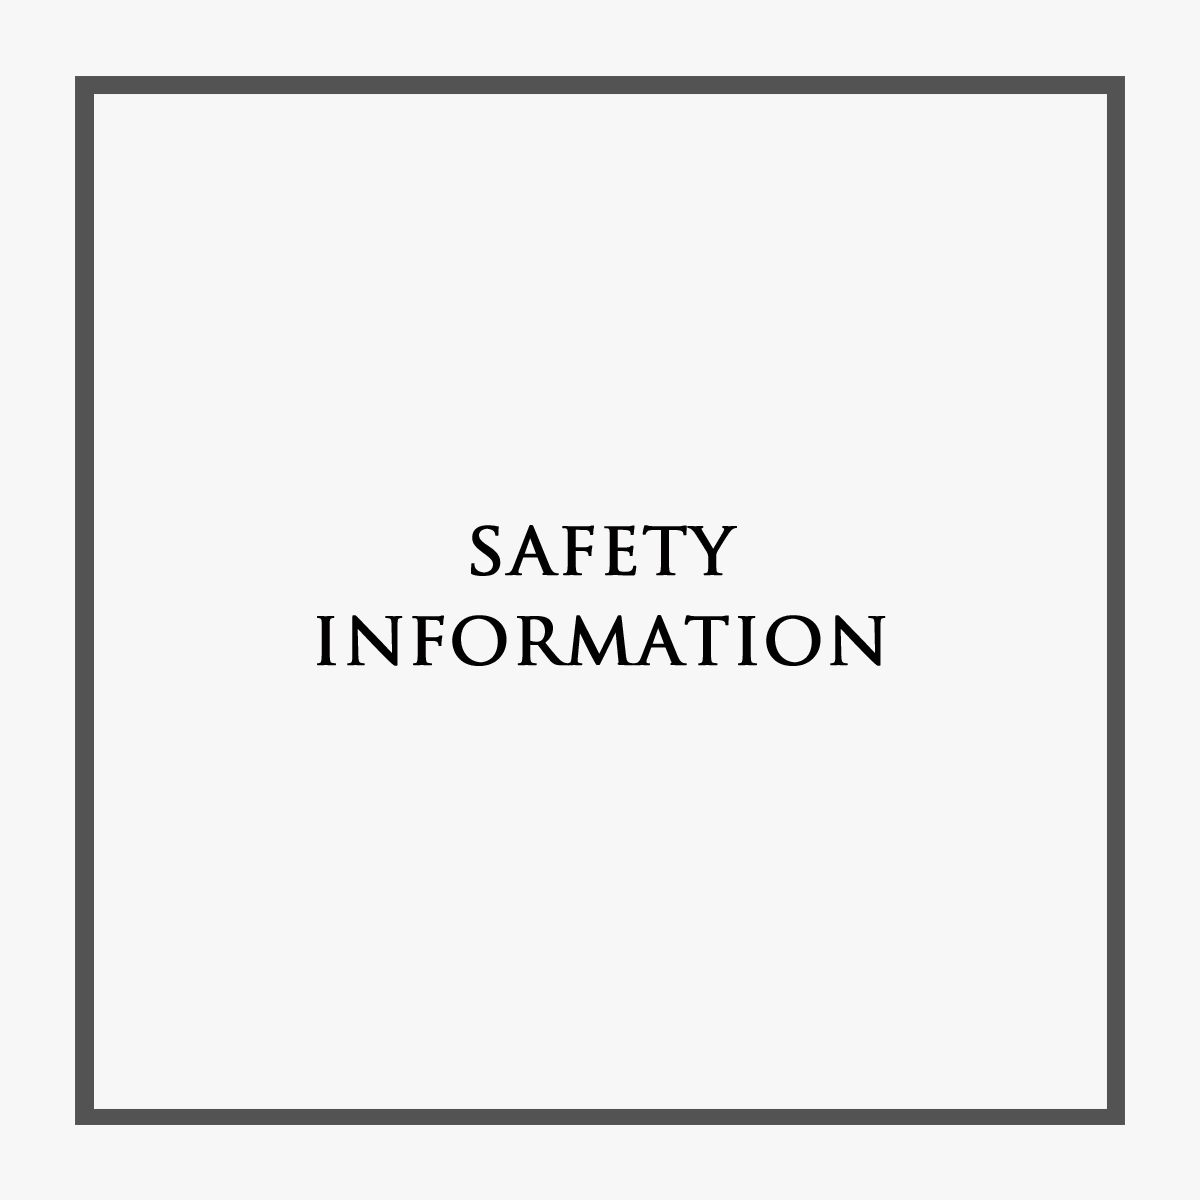 Castle Rock Safety Information